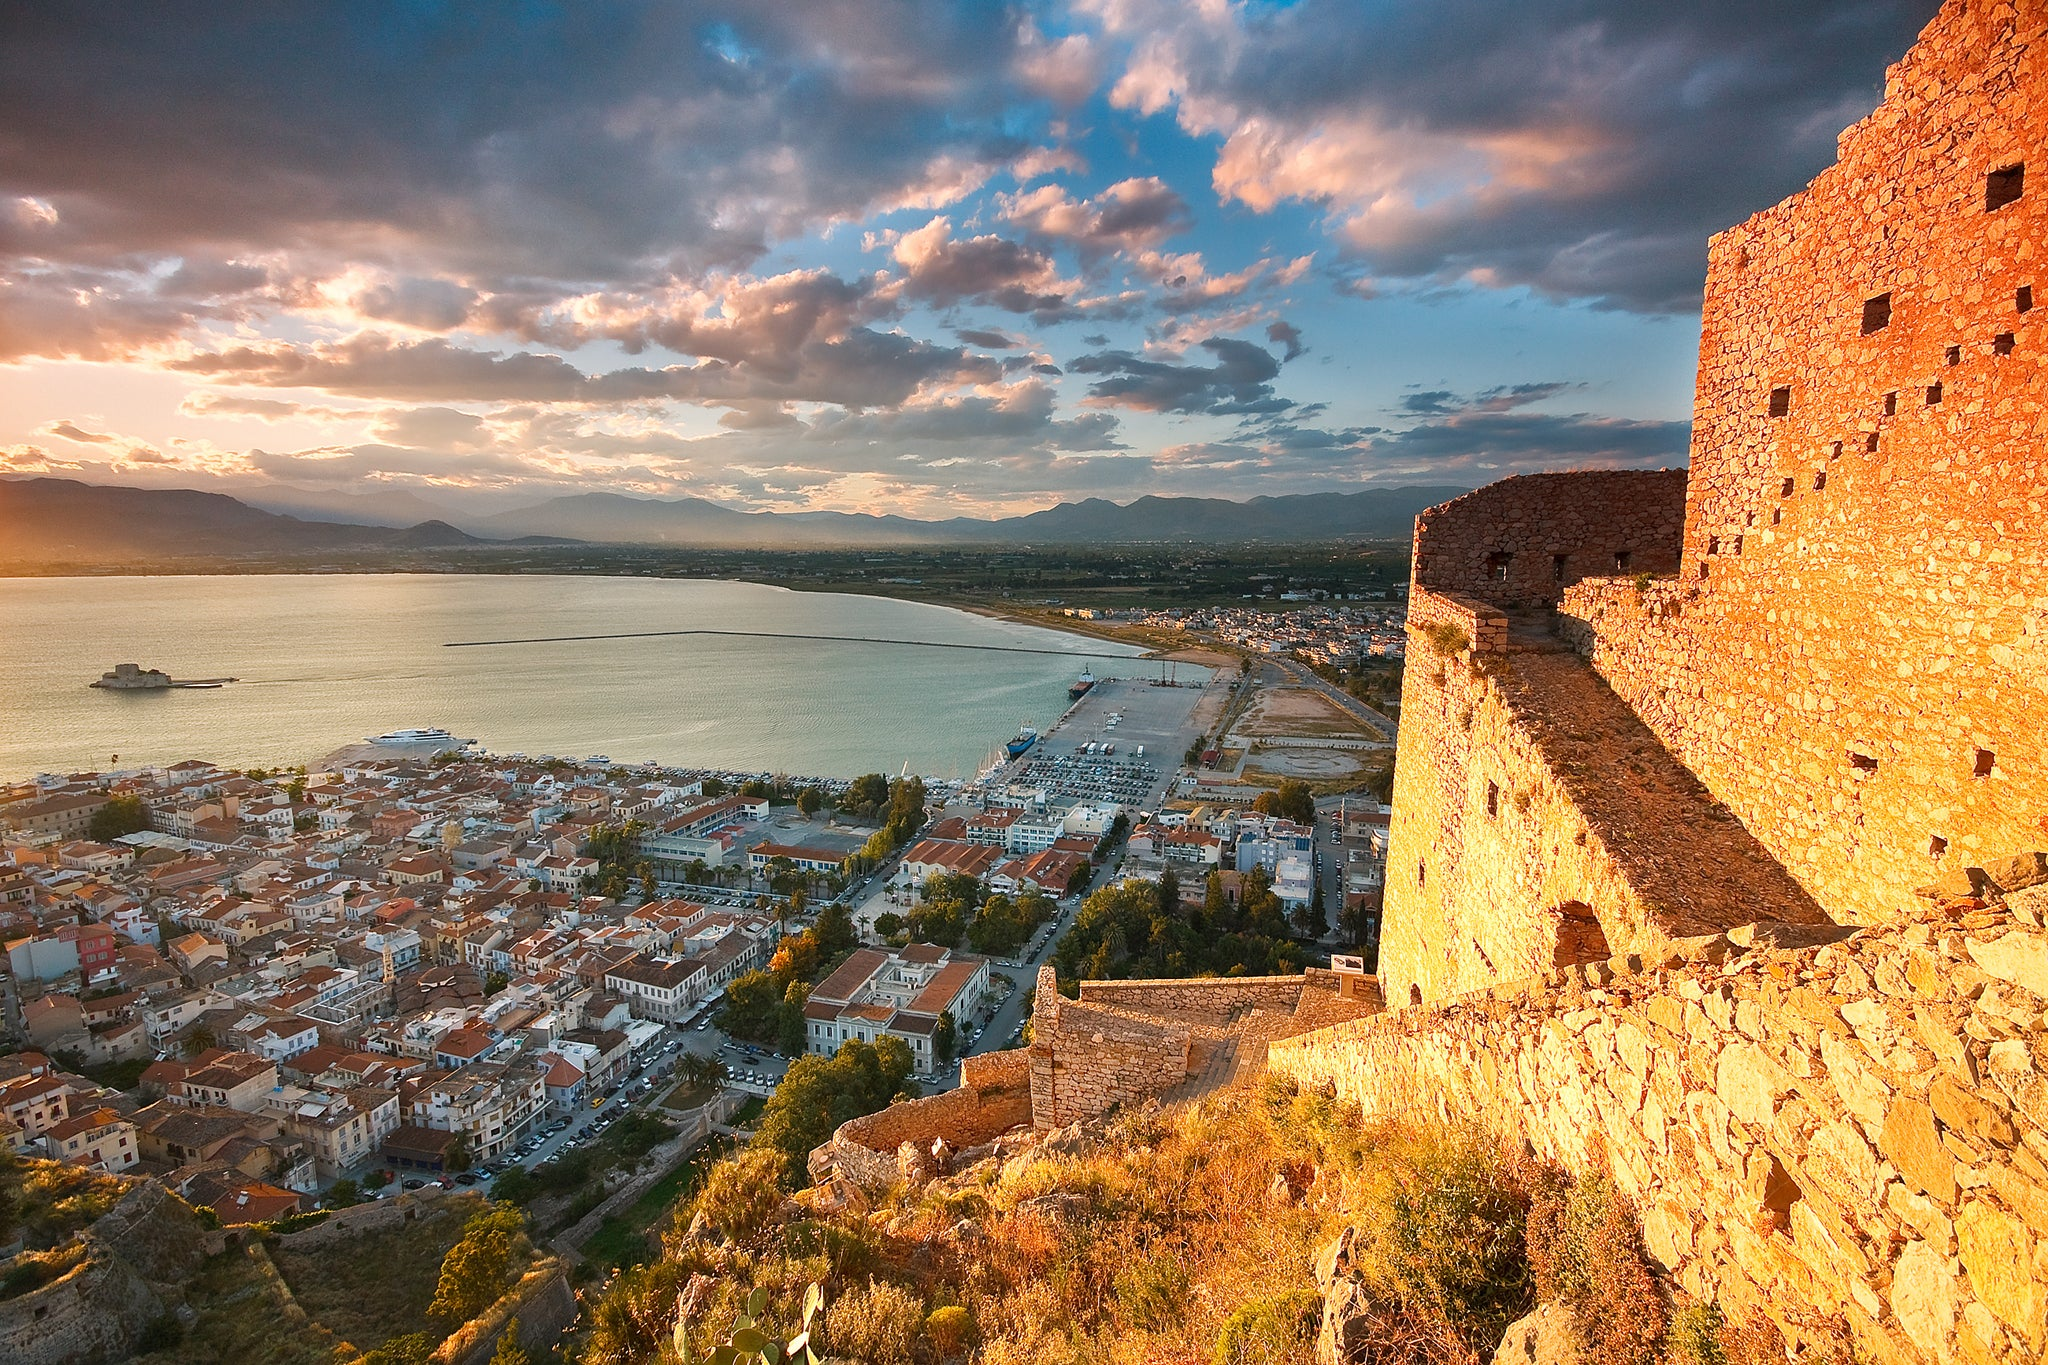 Cheap Health Insurance >> Travel guide to... Mainland Greece | Europe | Travel | The Independent